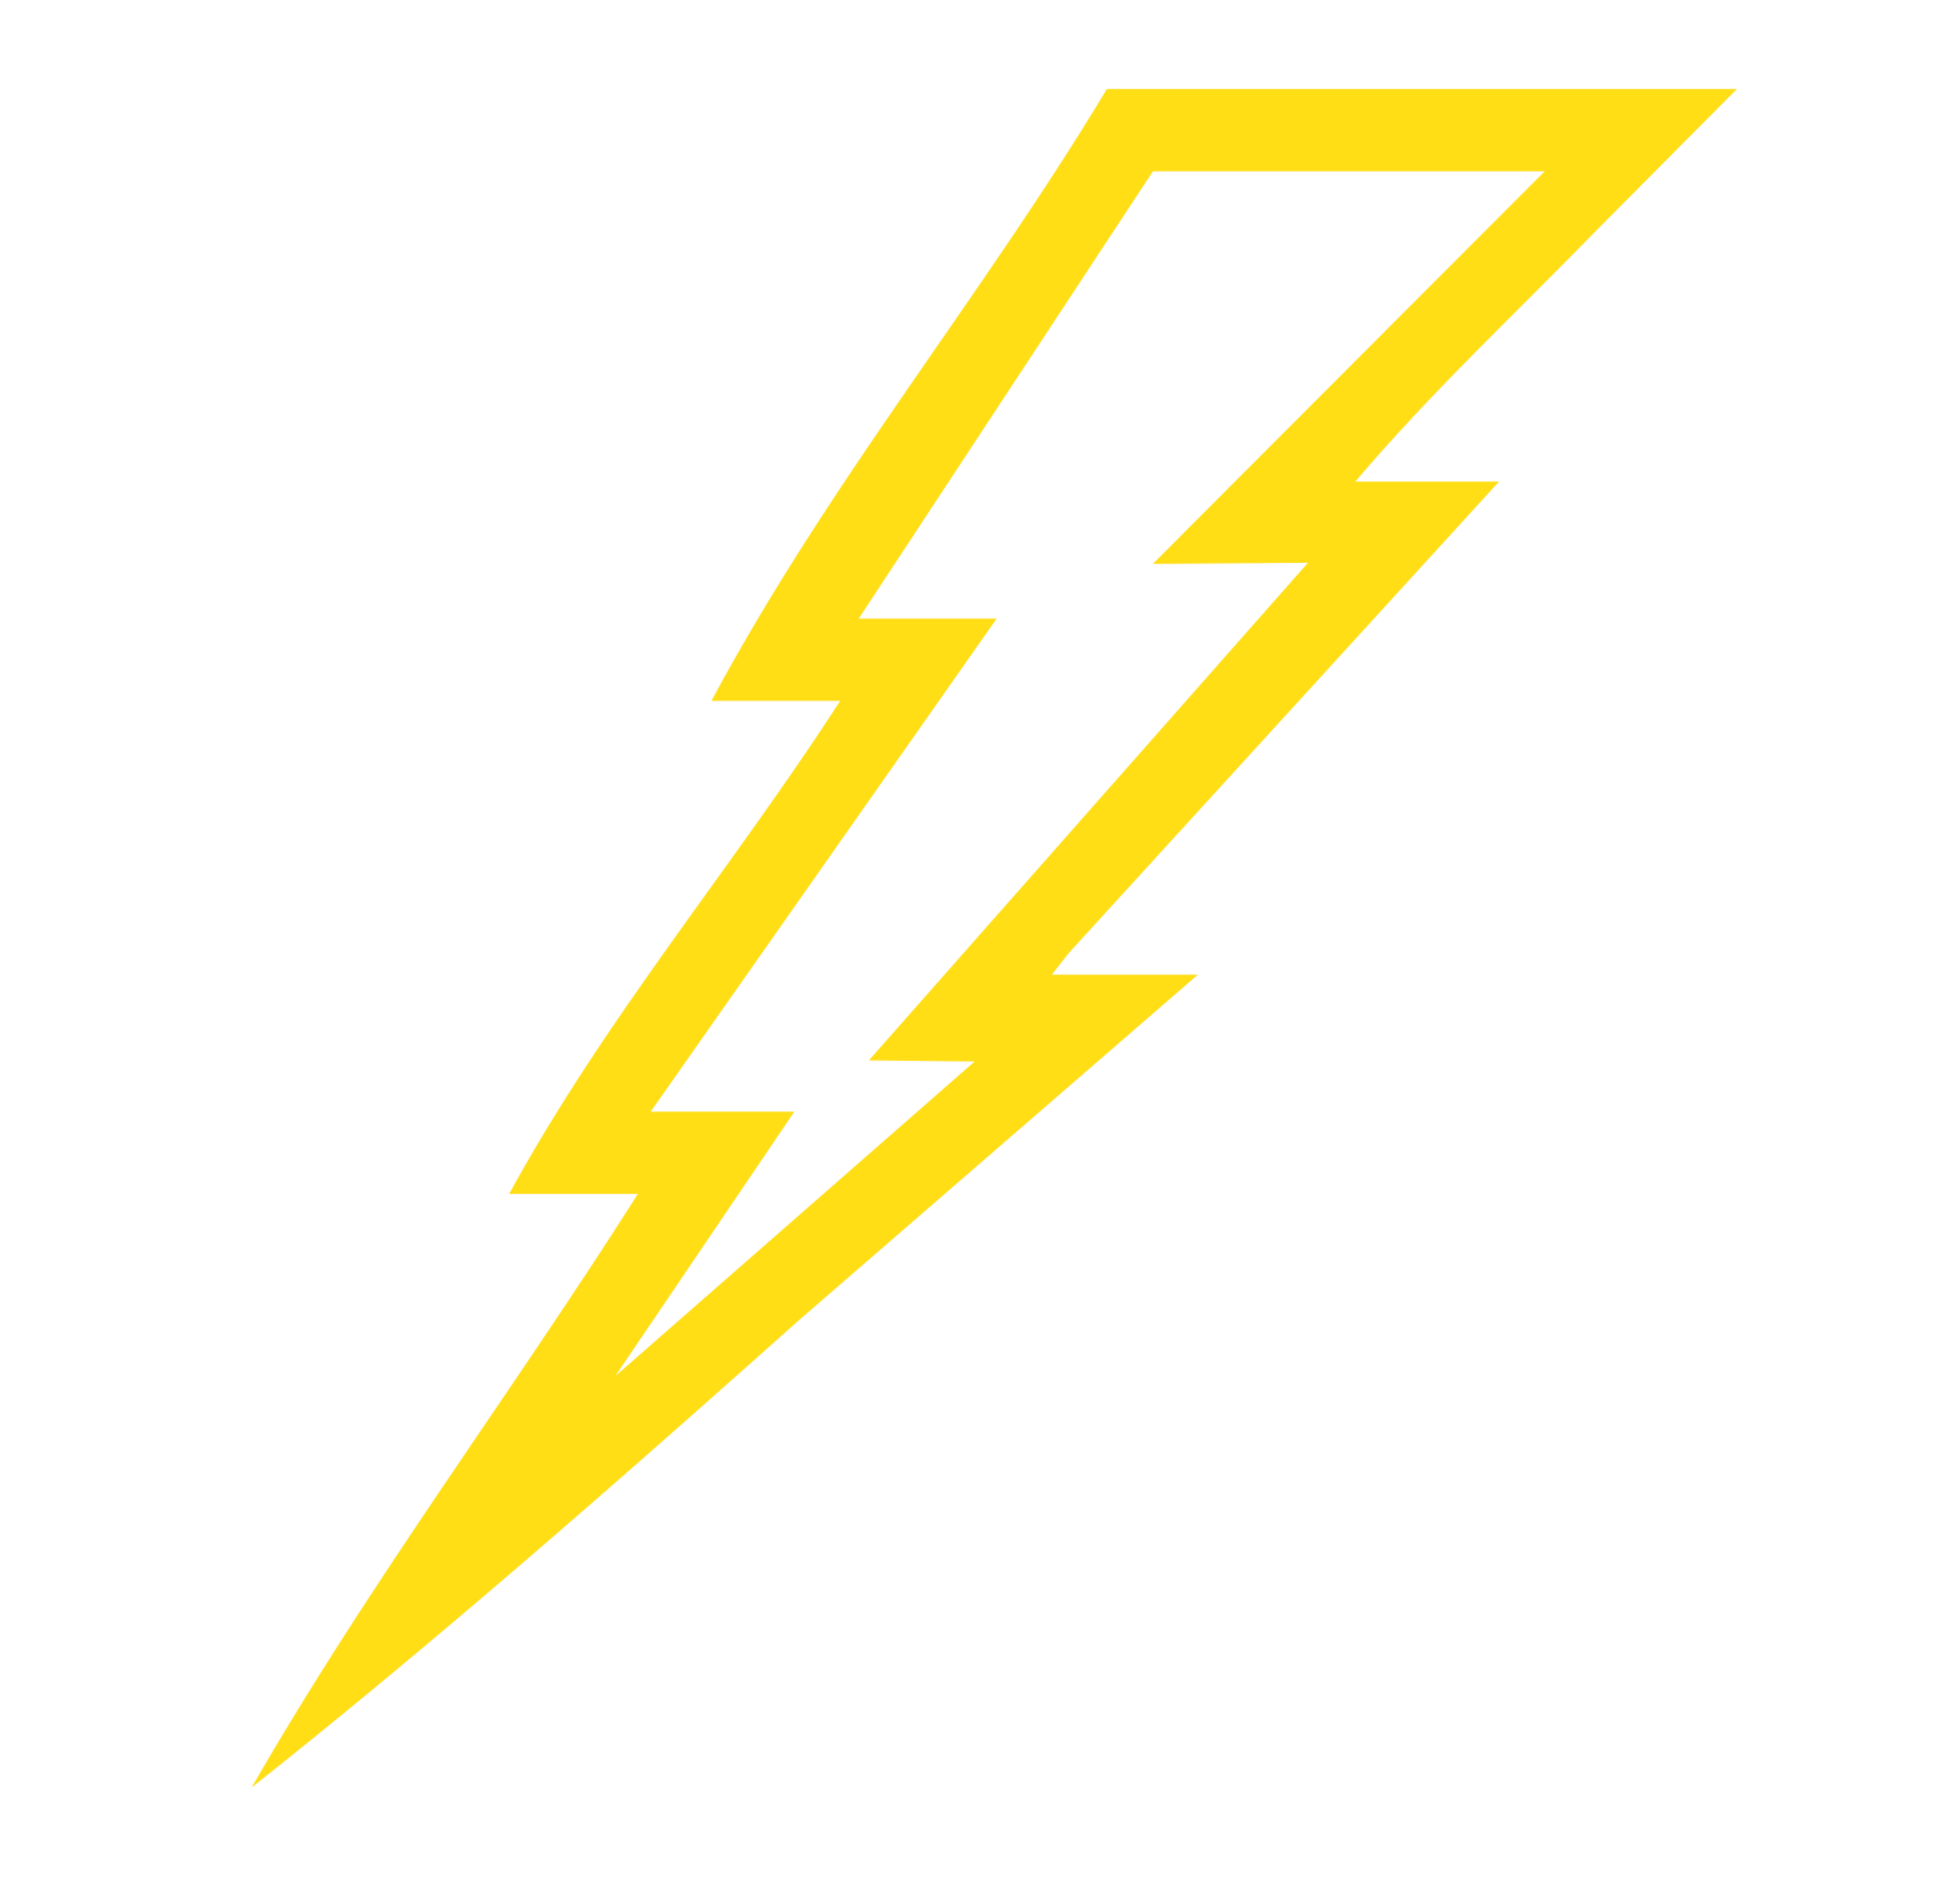 Electric clipart lightening bolt. Electricity zeus lightning pencil